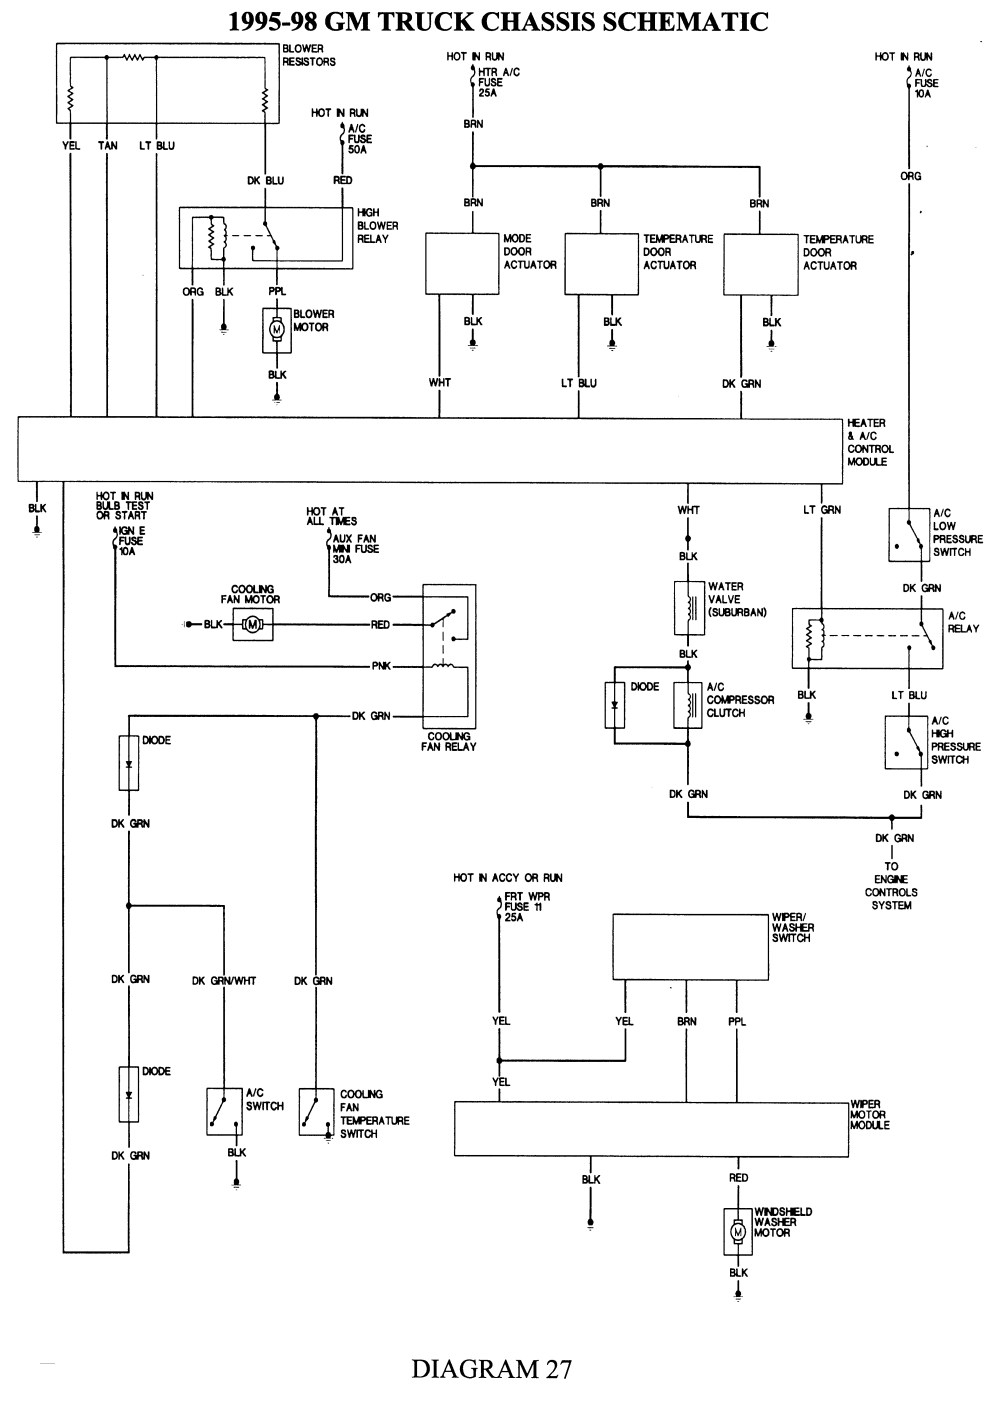 1998 chevy tahoe wiring diagram Download-Power Diagram Free Download 1998 Chevy Tahoe Wiring Diagram Wiring Diagram 14-c